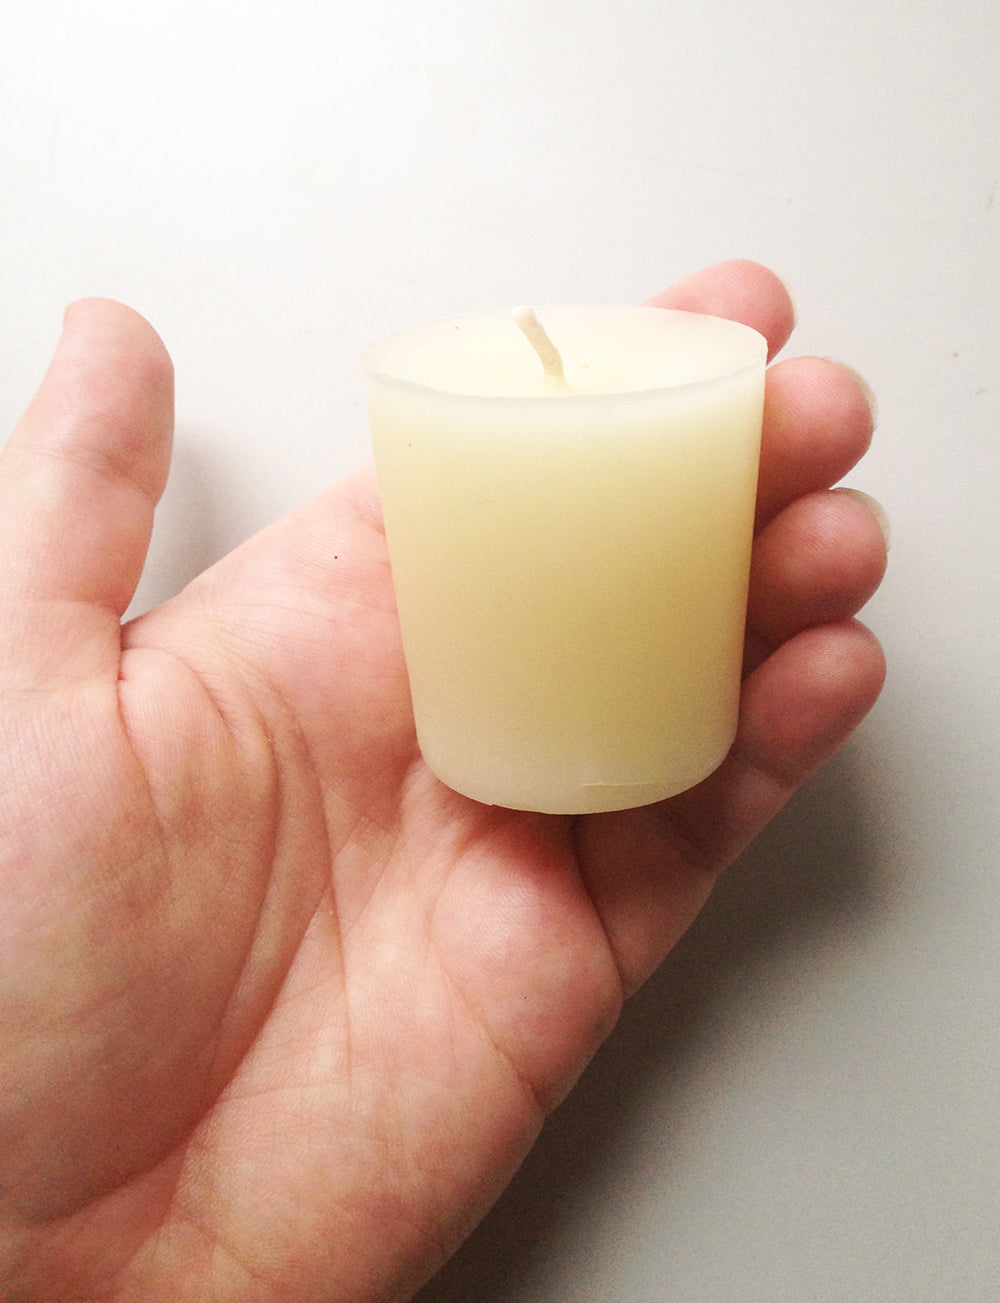 votive beeswax candle resting in hand